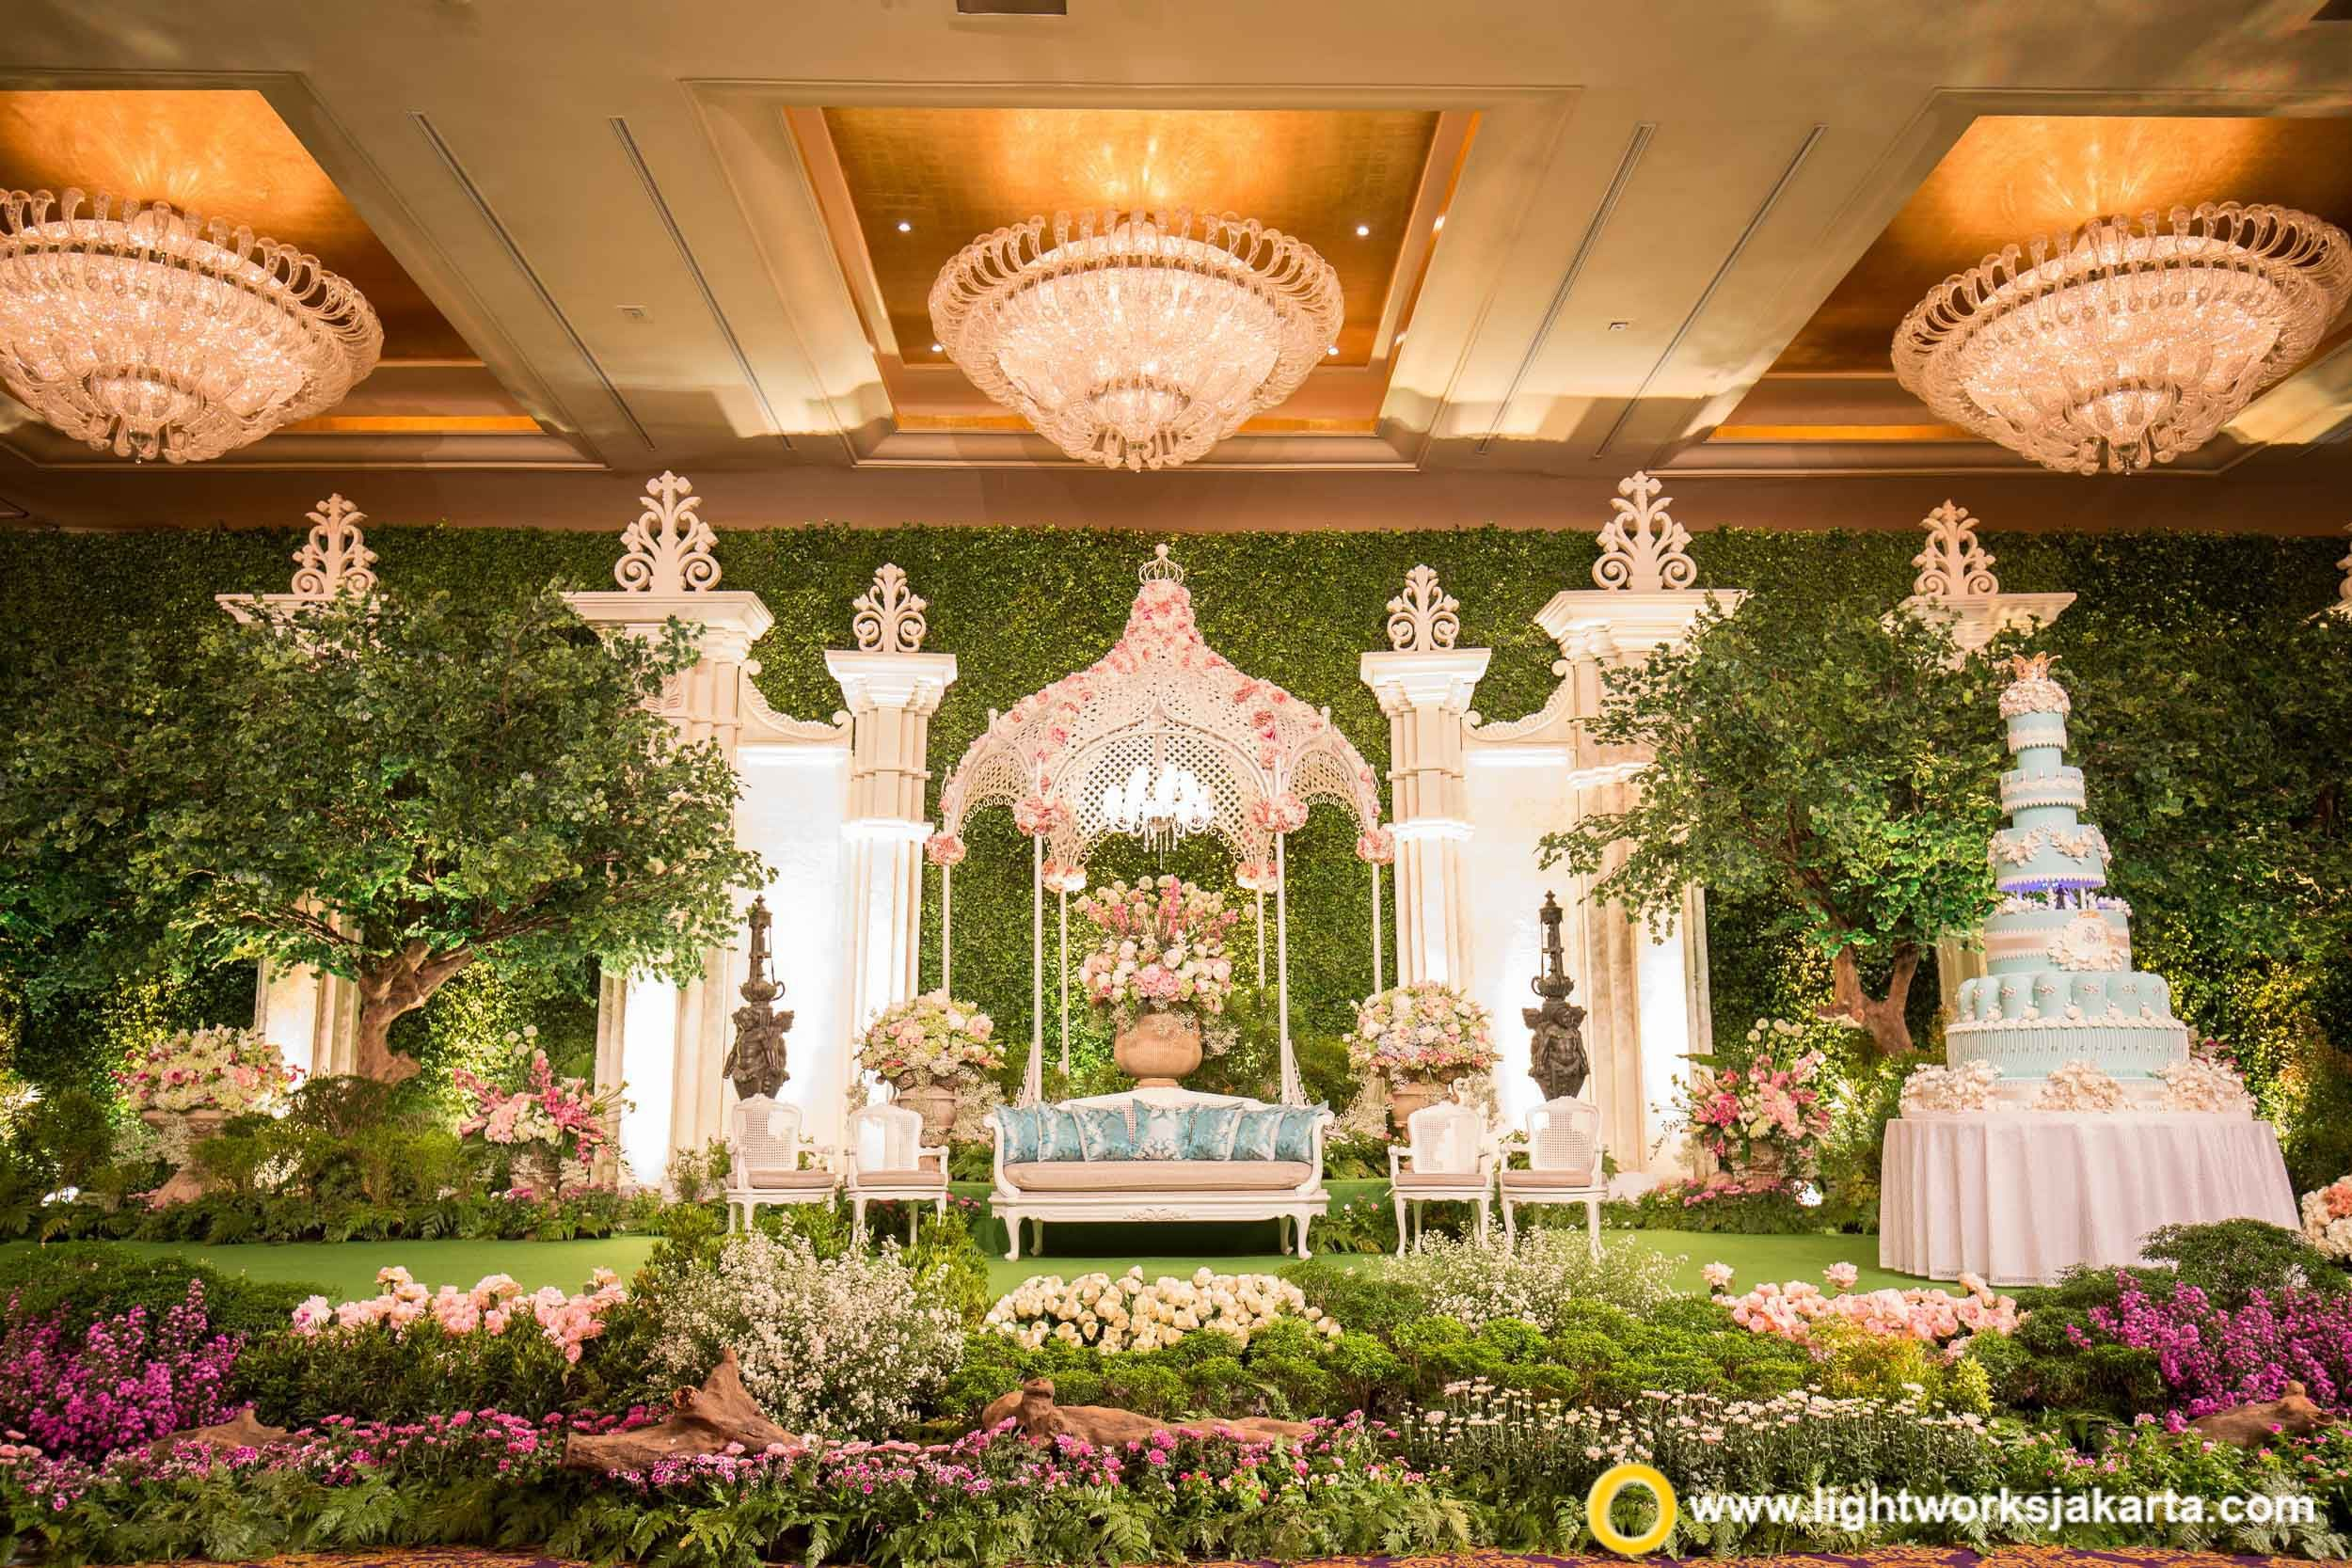 Rico and jacquelines wedding reception organized by iwp perfect wedding junglespirit Gallery